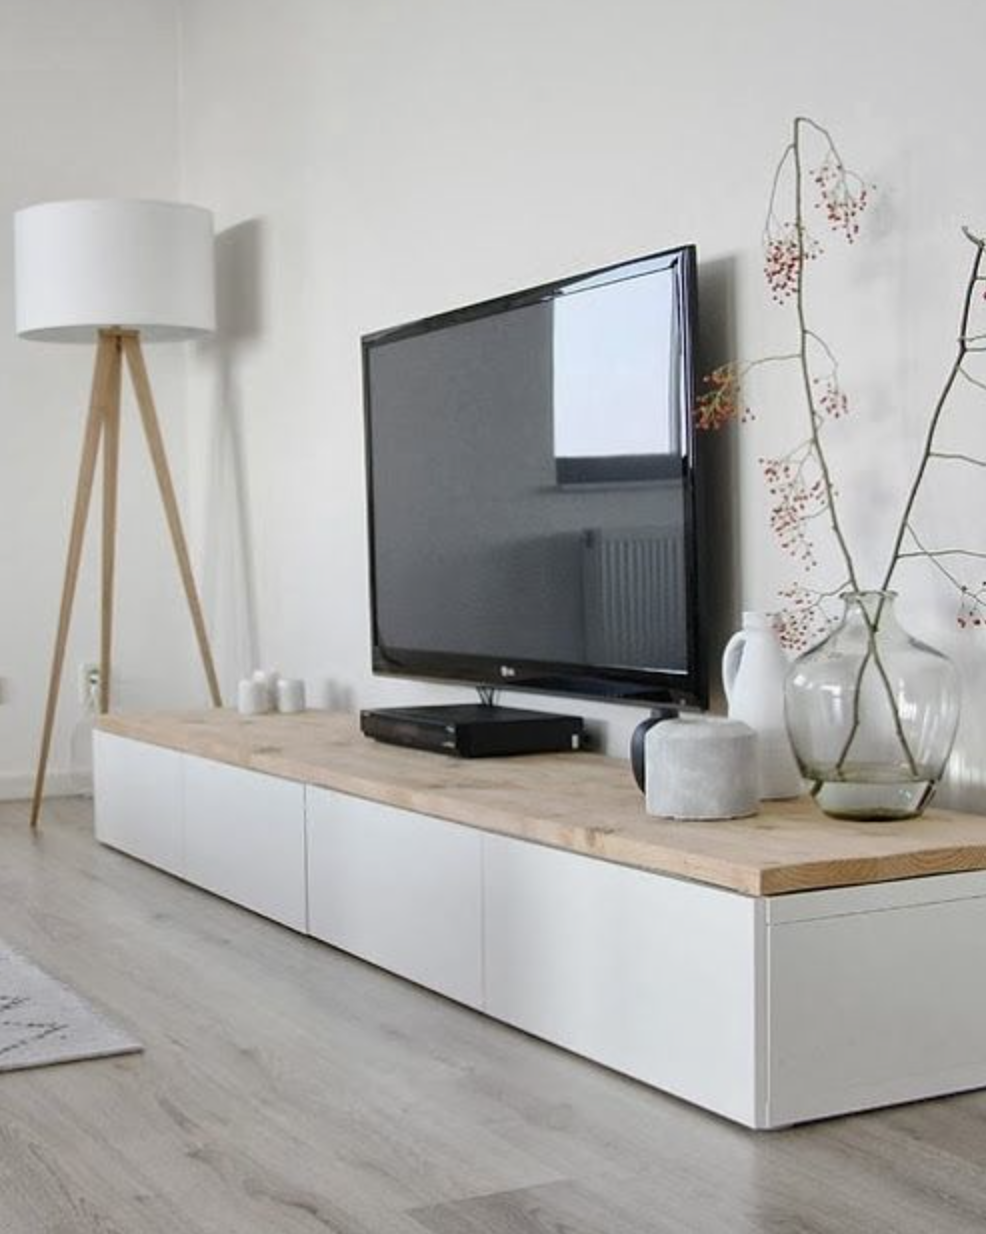 Captura De Tela 2014 08 09 C3a0s 20 23 36 Png 986 1234 Home  # Meuble Tv Mural Ikea